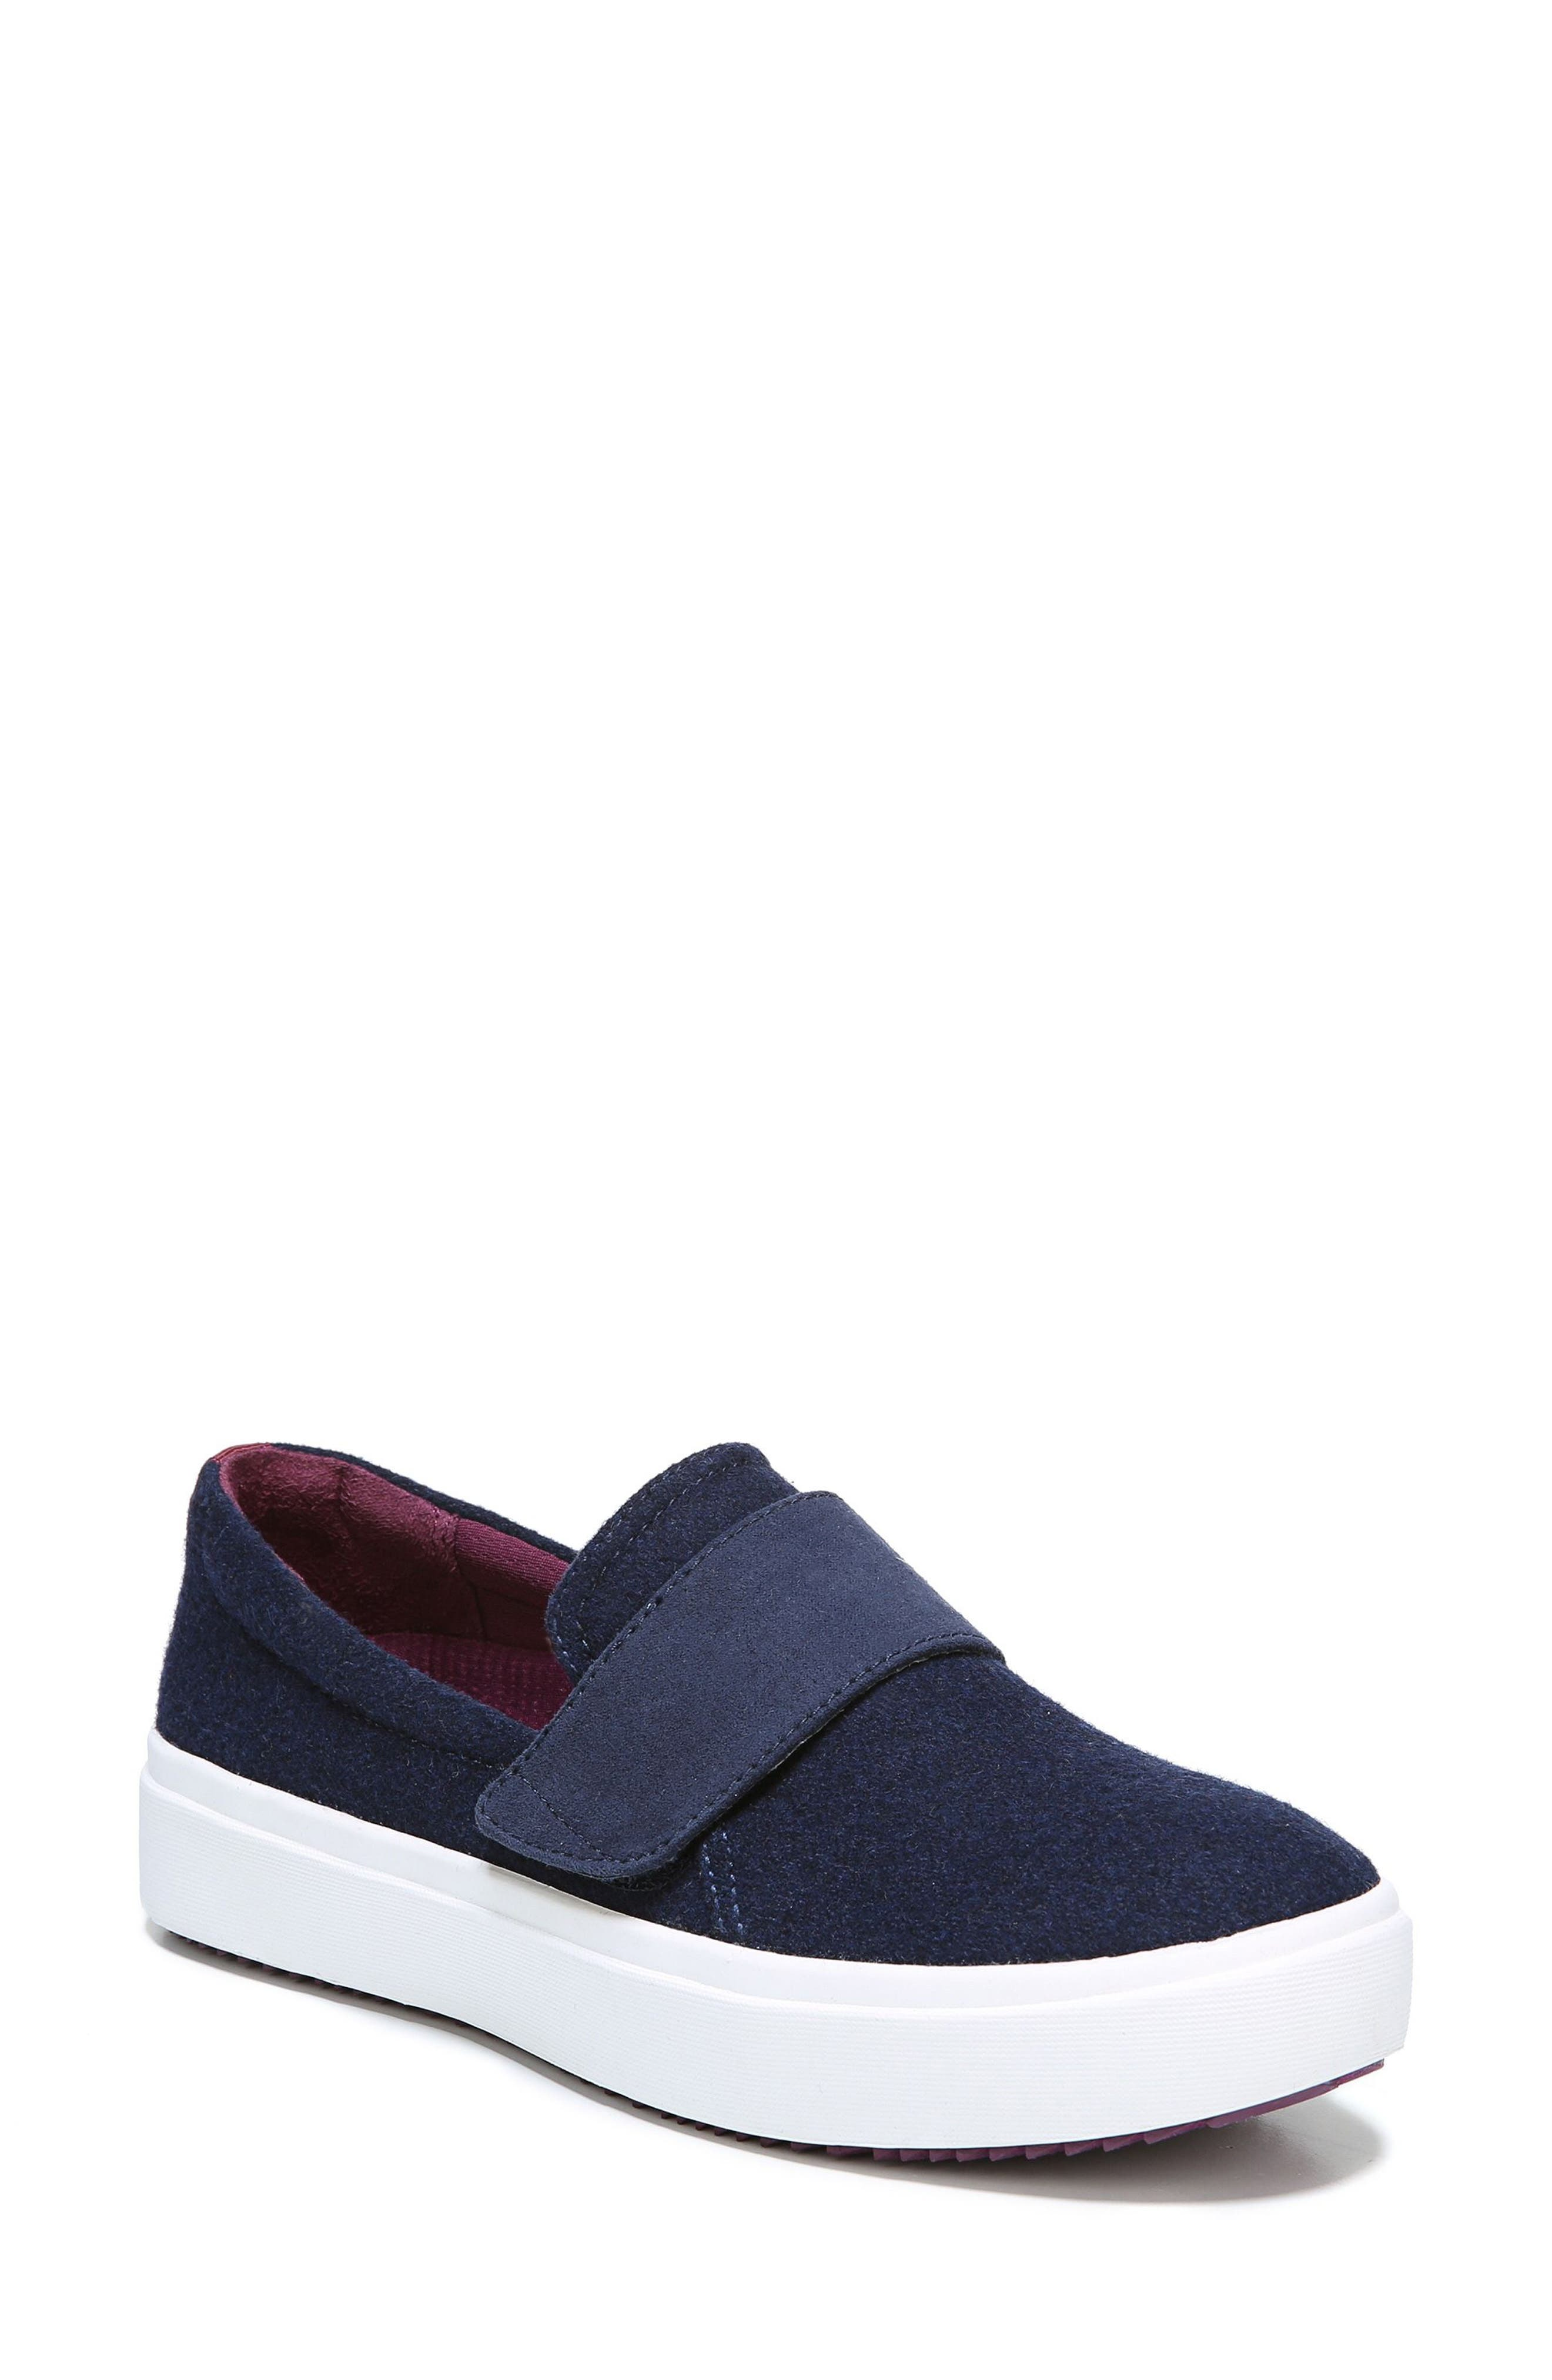 Dr. Scholl's Wander Band Slip-On Sneaker (Women)